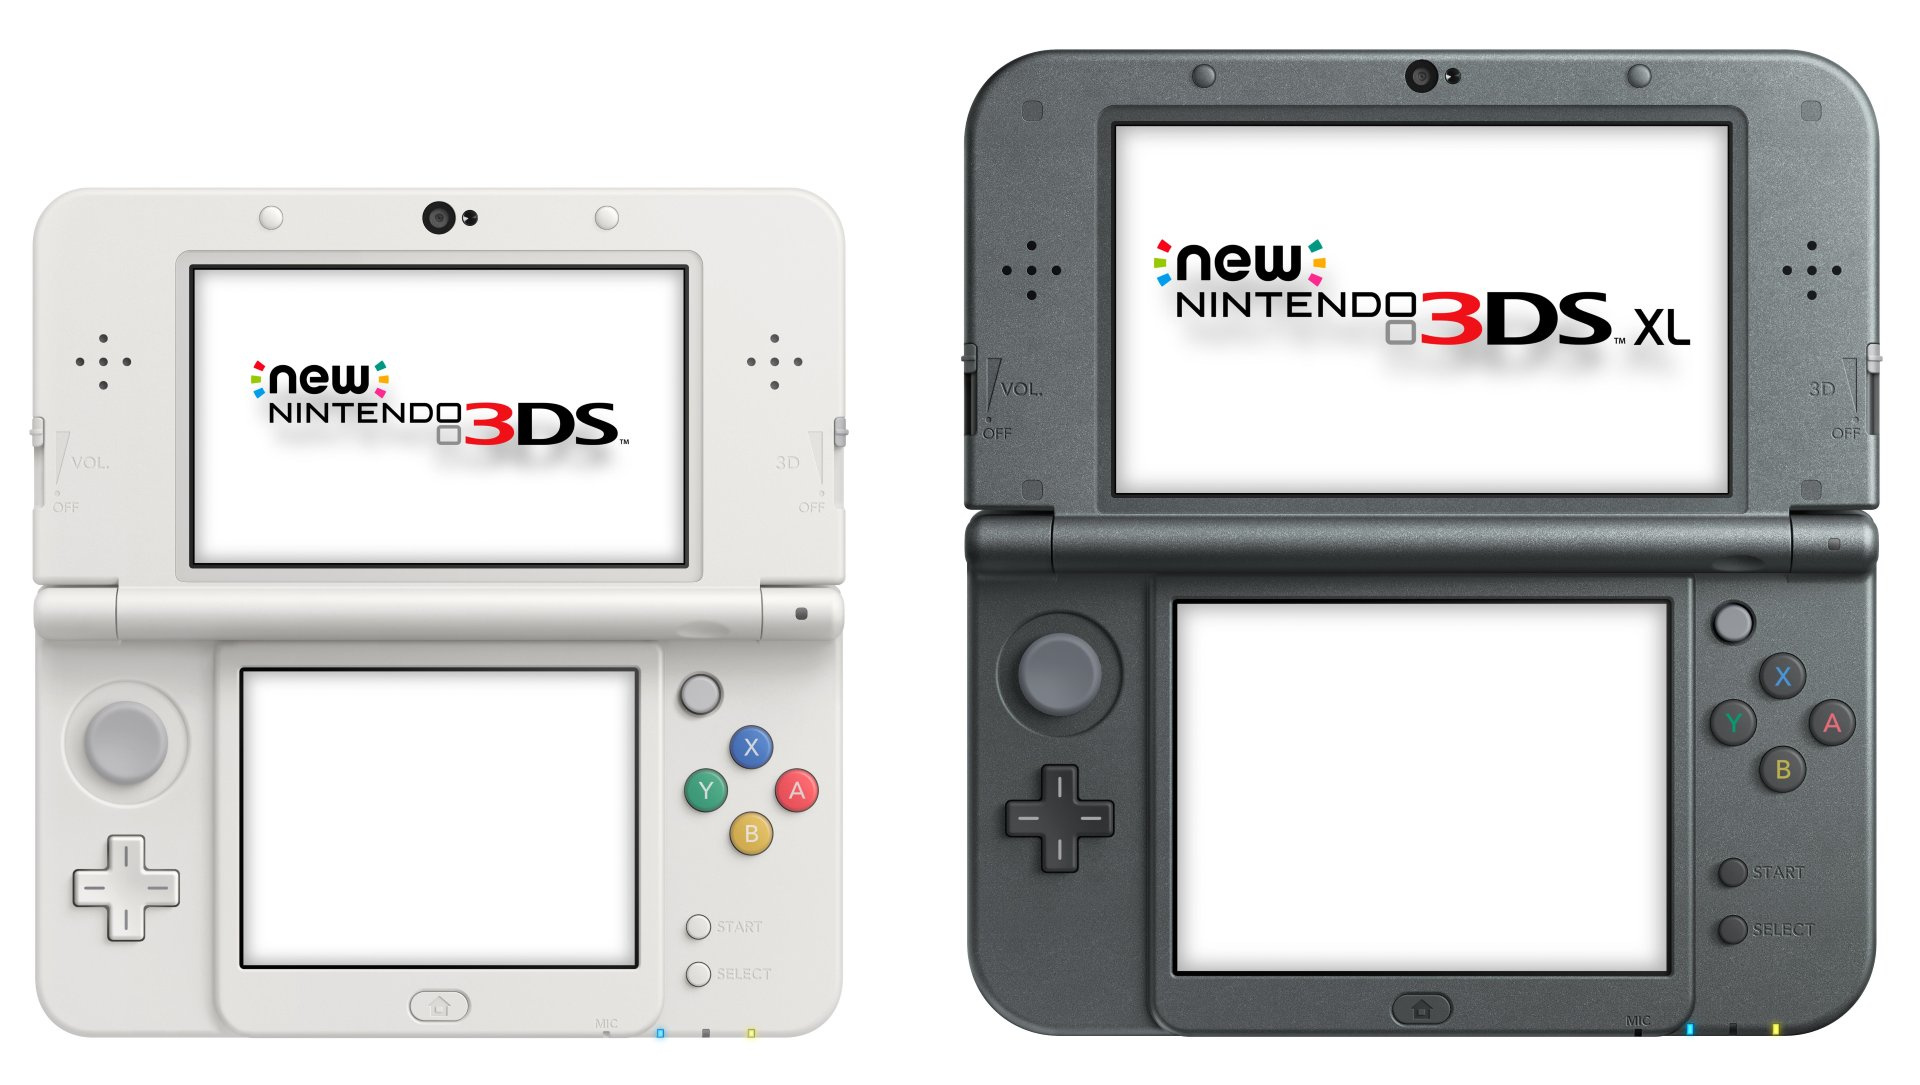 Nintendo Offering Black New 3DS For $99 This Black Friday